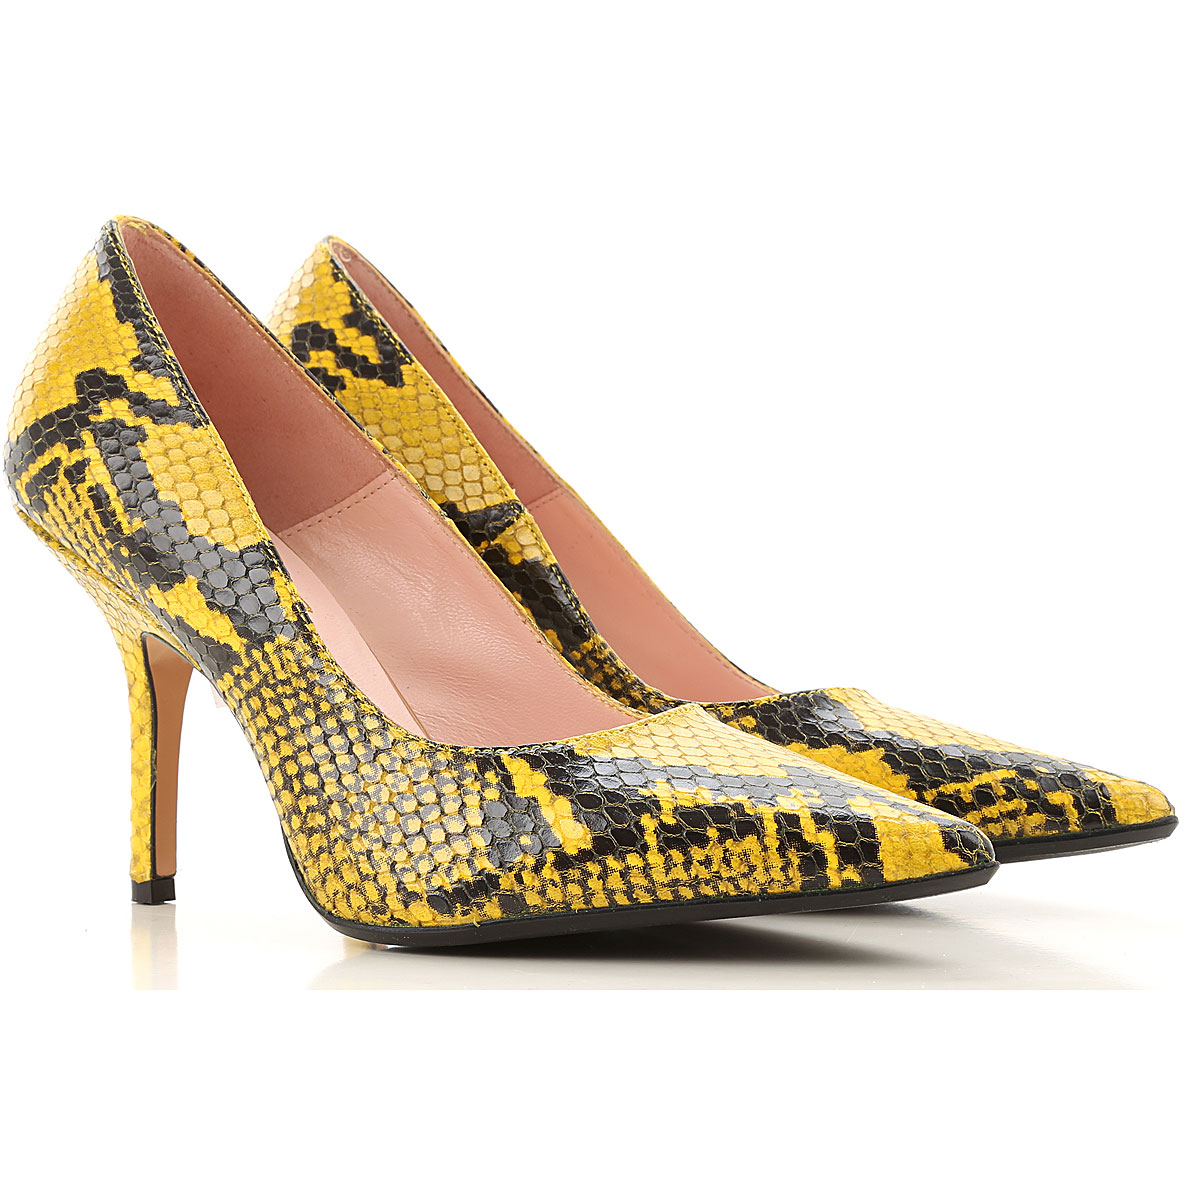 Anna F. Pumps & High Heels for Women, Yellow, Leather, 2019, 10 6 8